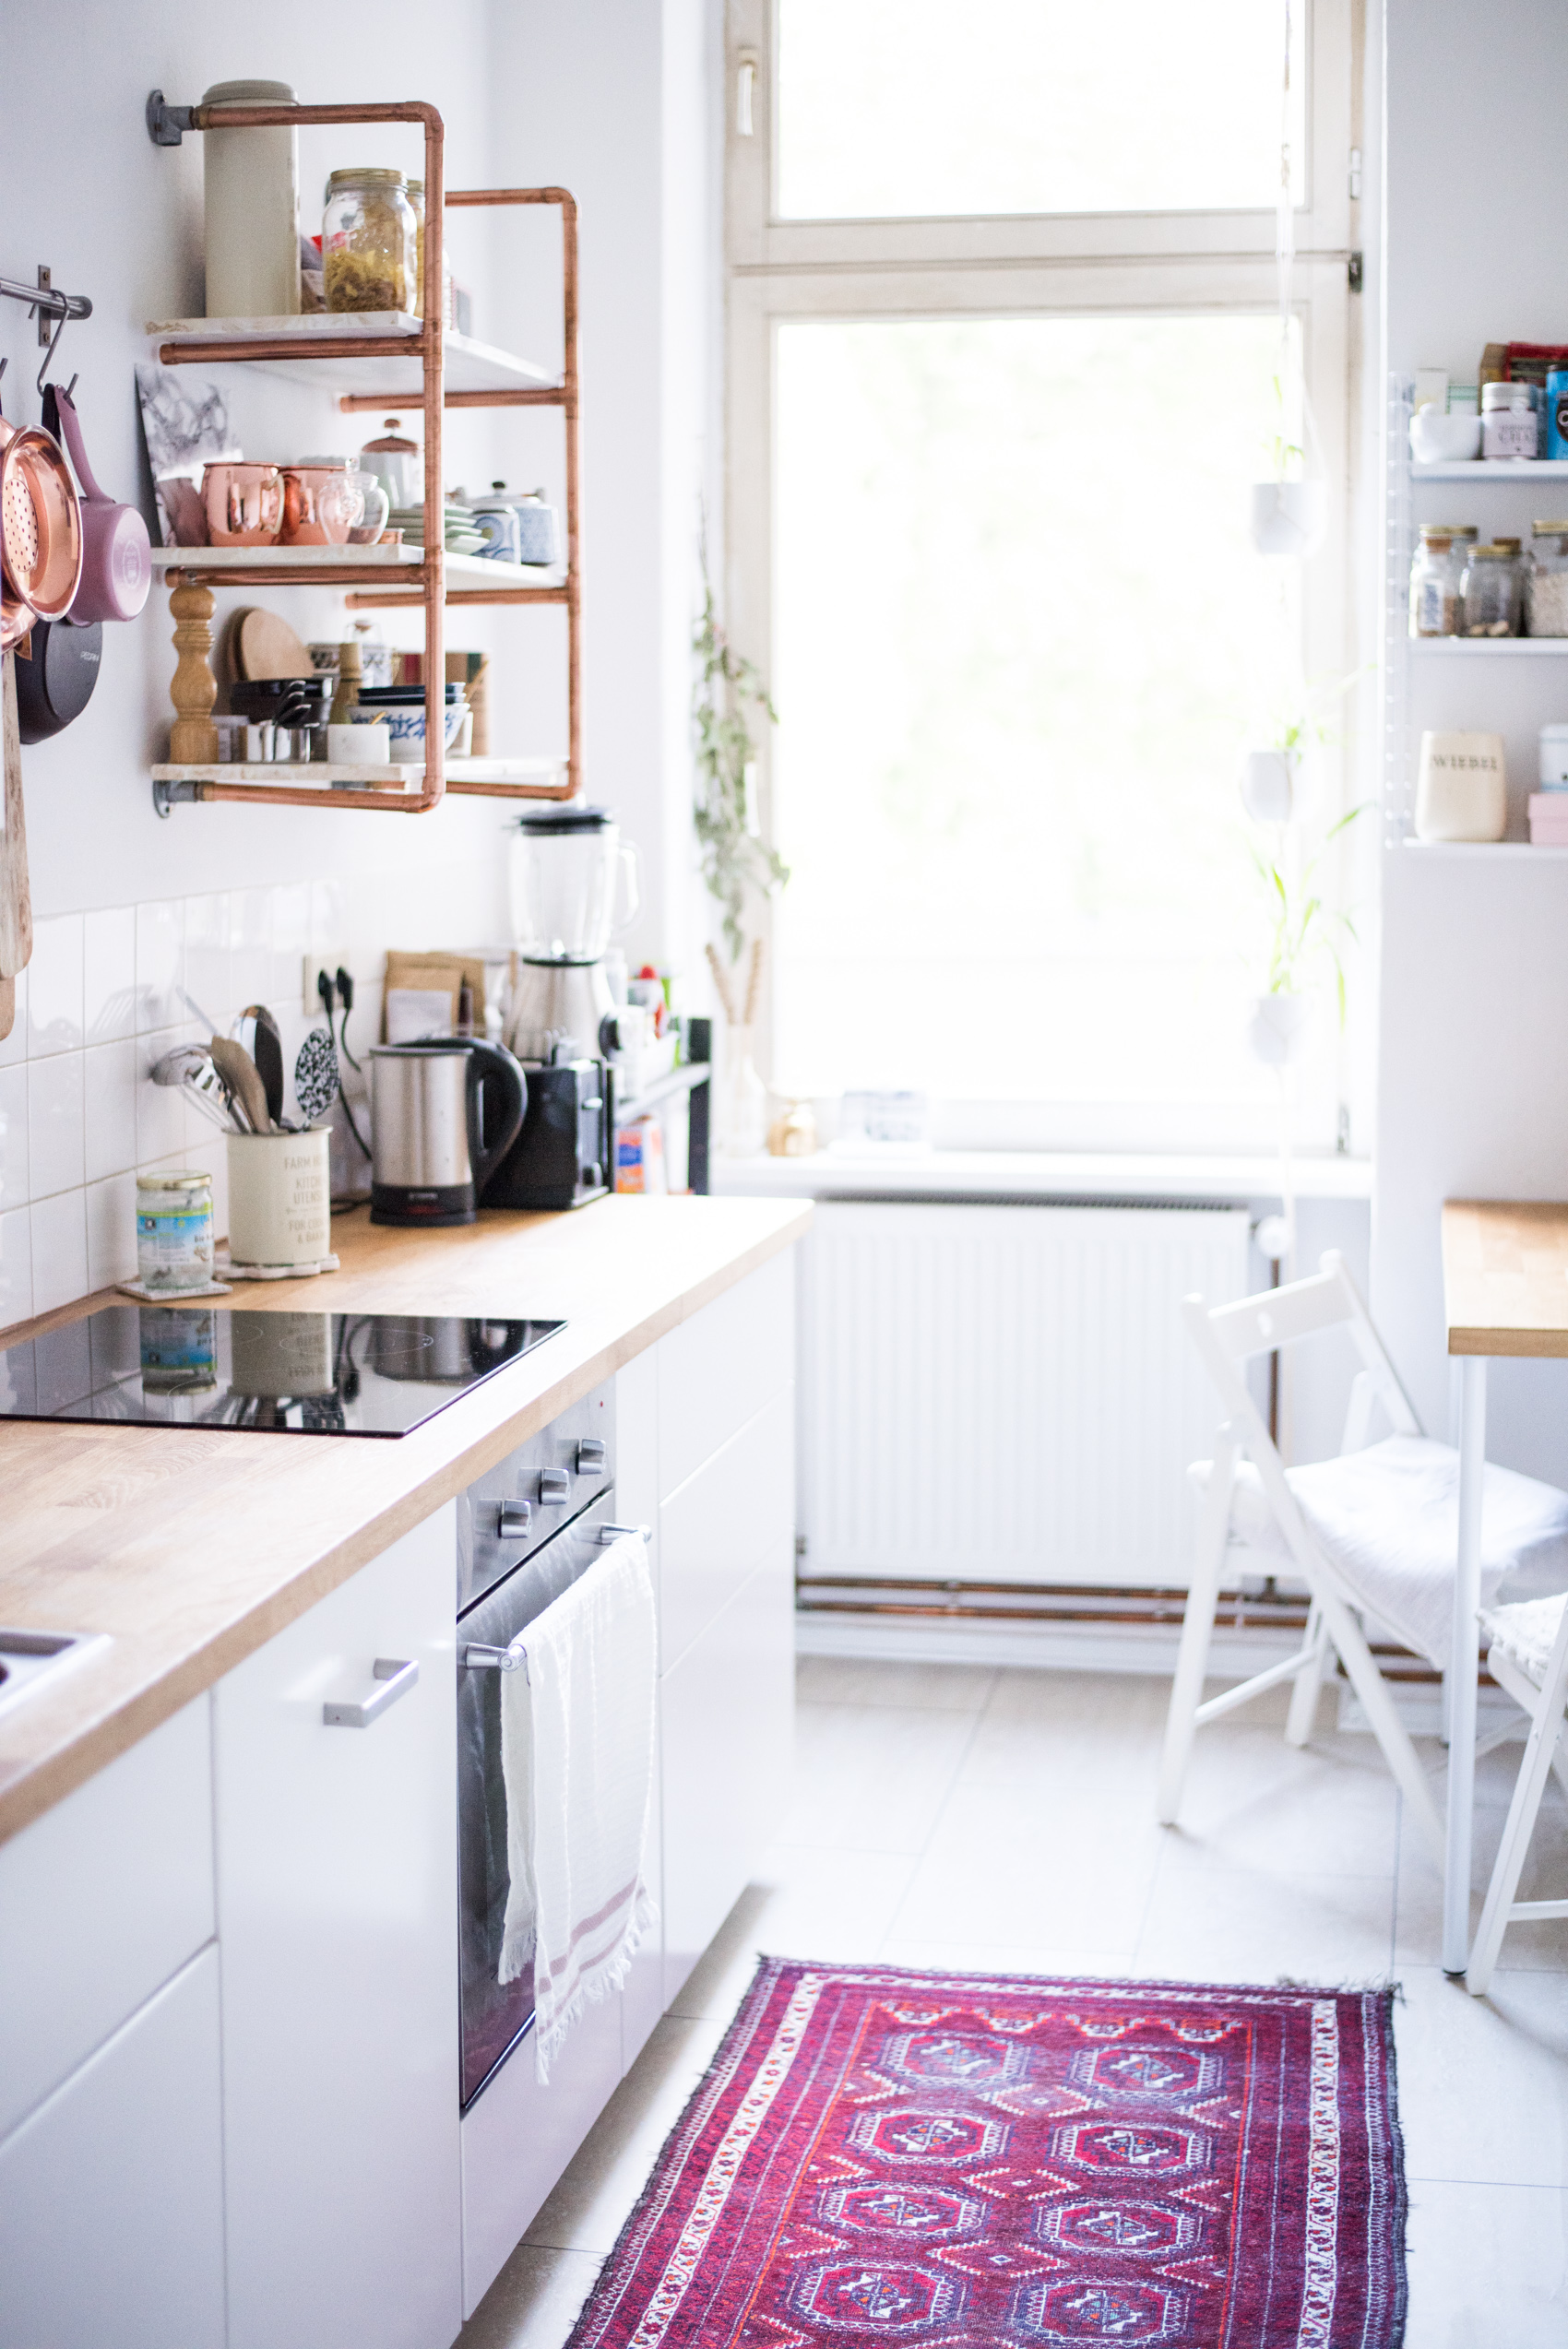 10 low budget interior tips for your kitchen - heylilahey.